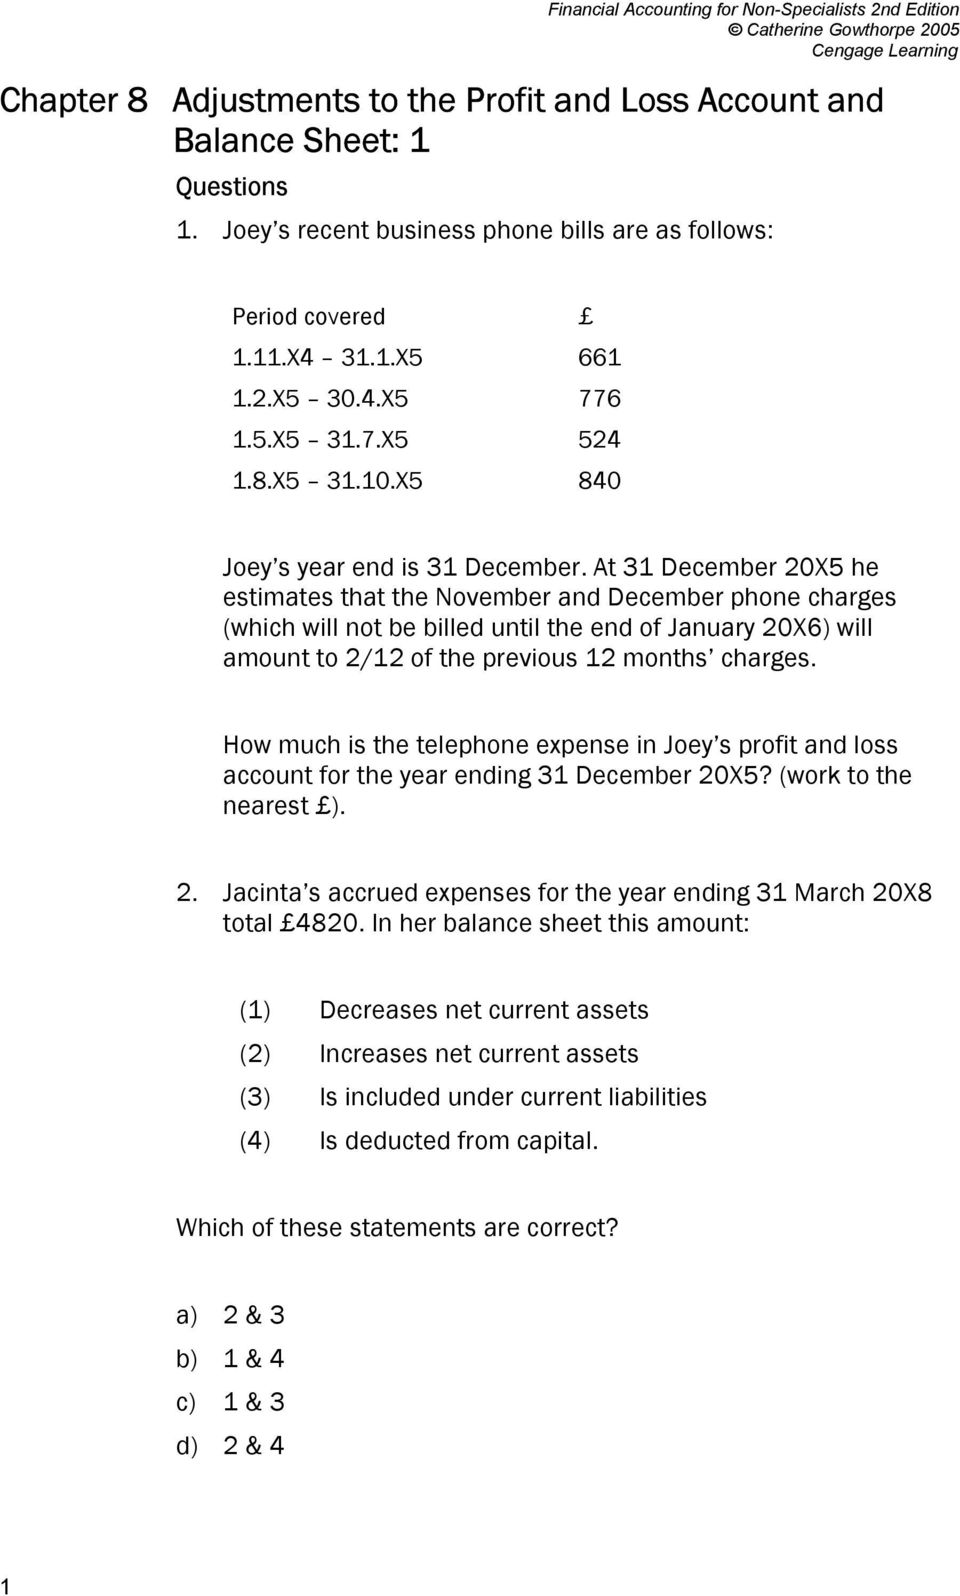 At 31 December 20X5 he estimates that the November and December phone charges (which will not be billed until the end of January 20X6) will amount to 2/12 of the previous 12 months charges.